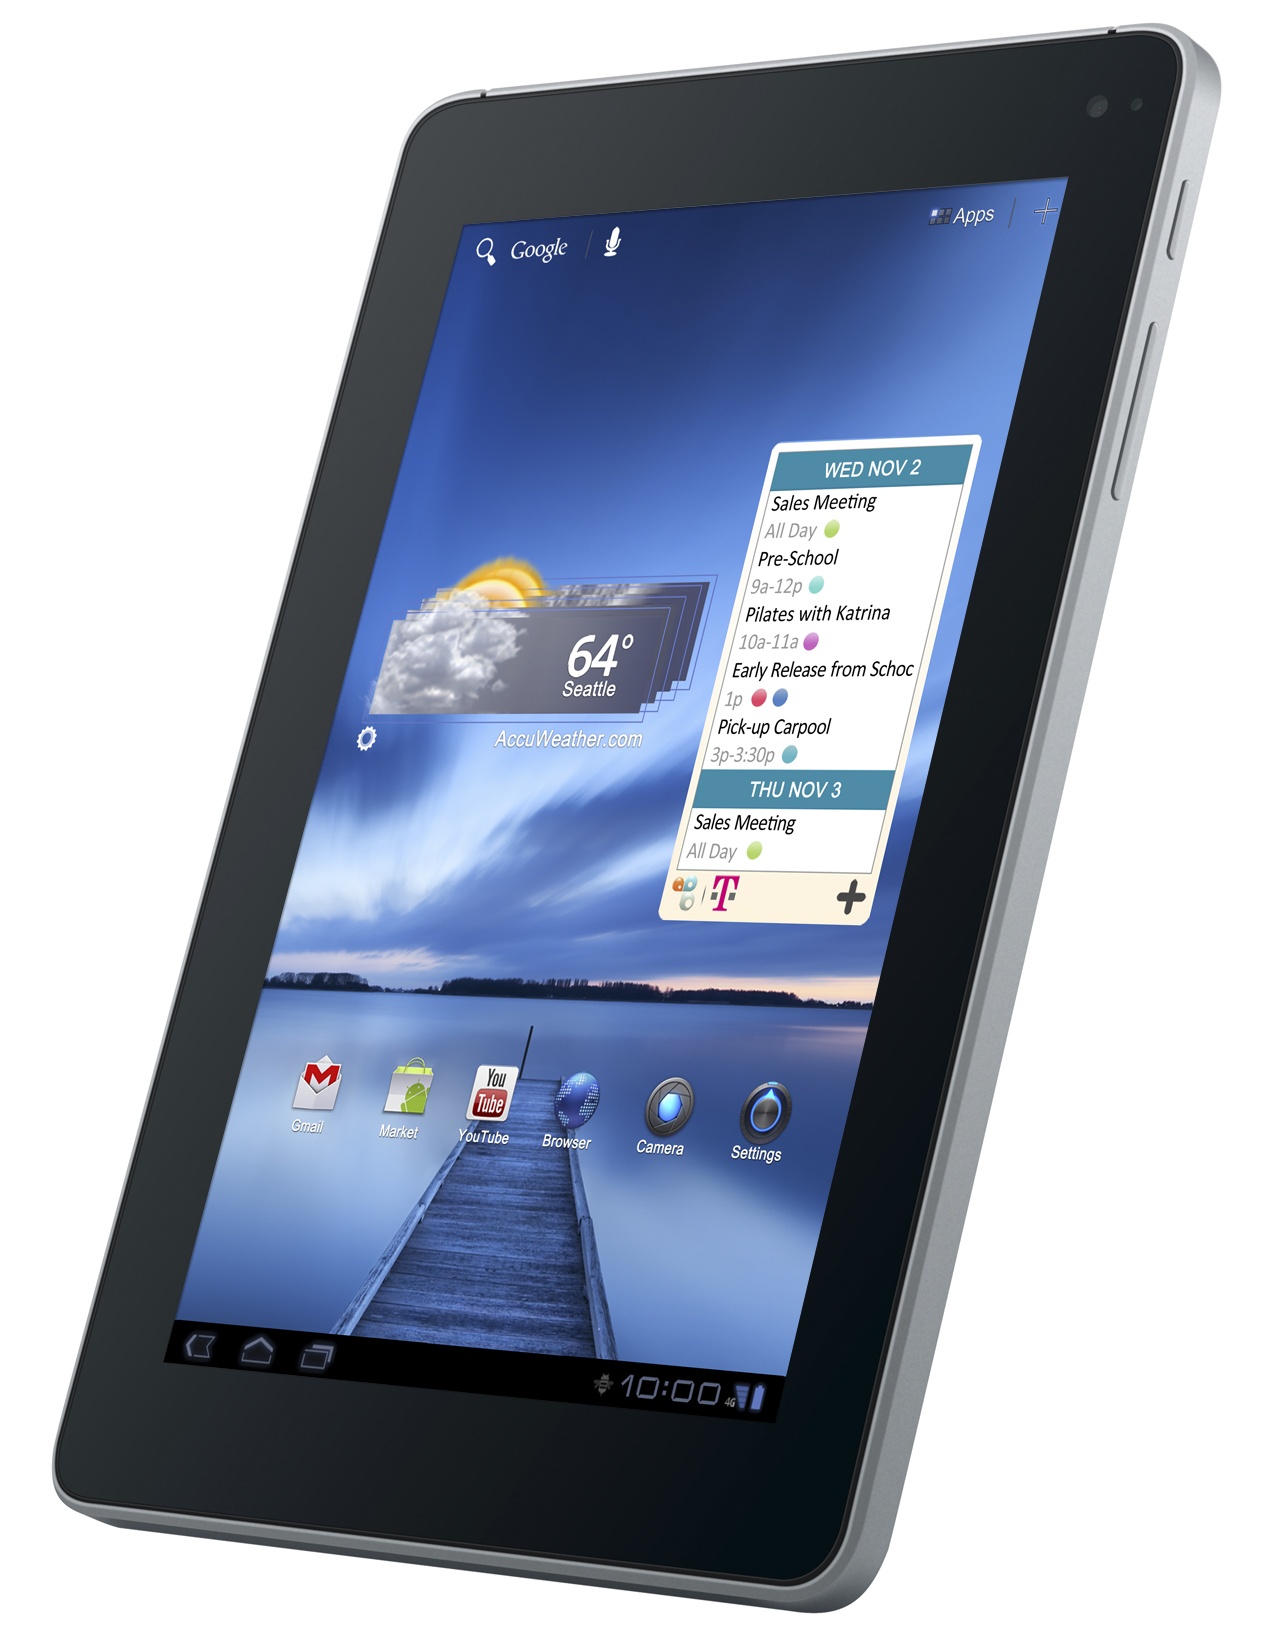 Win a Springboard Tablet from T-Mobile for Learning Mobile Safety